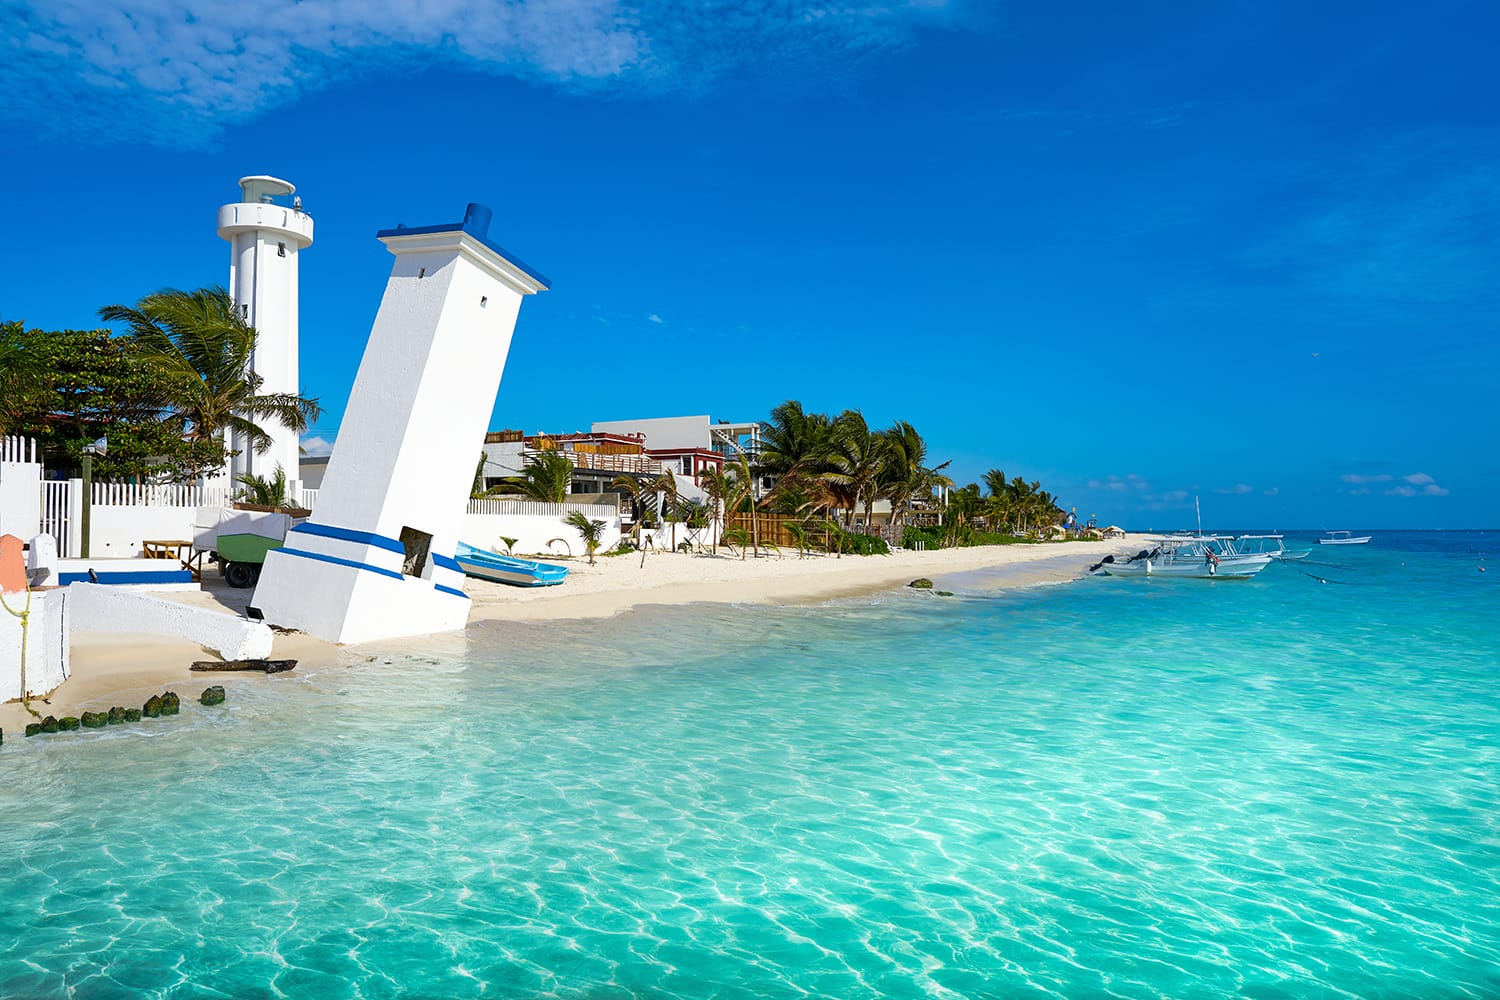 Lighthouse at Puerto Morelos, Mexico